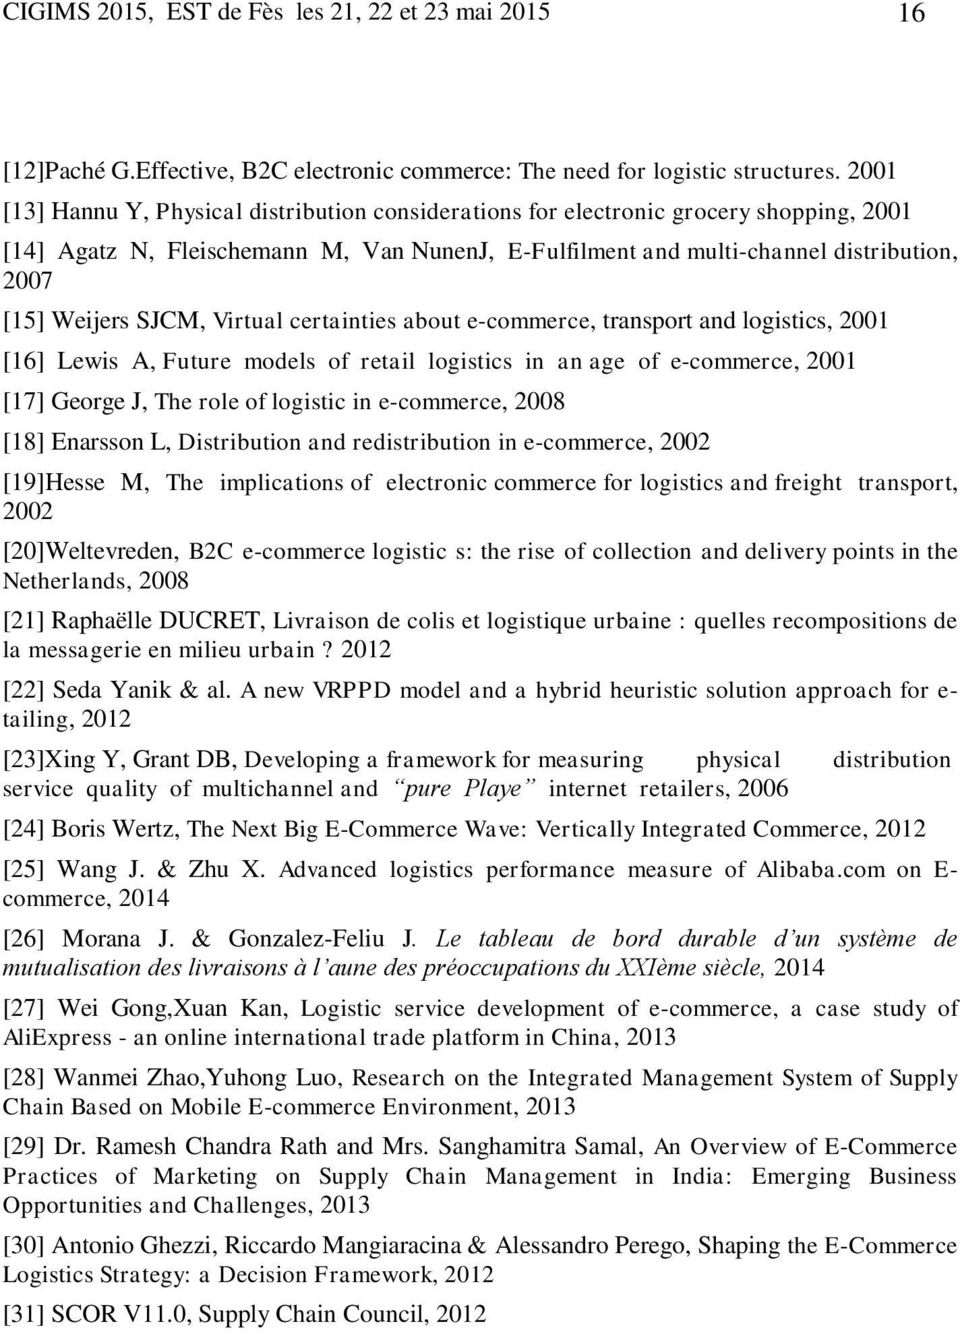 SJCM, Virtual certainties about e-commerce, transport and logistics, 2001 [16] Lewis A, Future models of retail logistics in an age of e-commerce, 2001 [17] George J, The role of logistic in